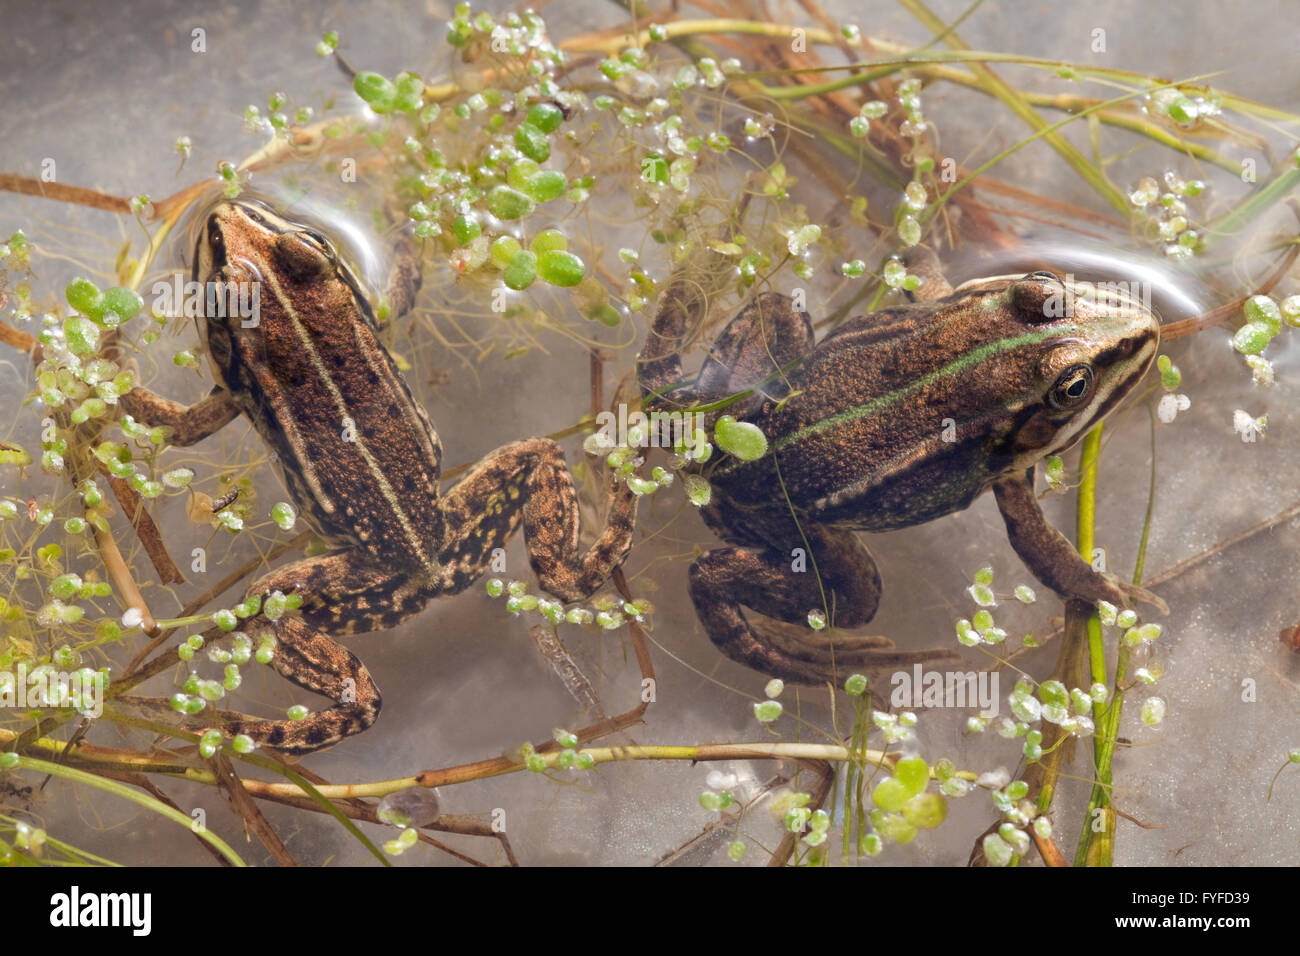 Pool Frog (Pelophylax lessonae). Second year old specimens. - Stock Image